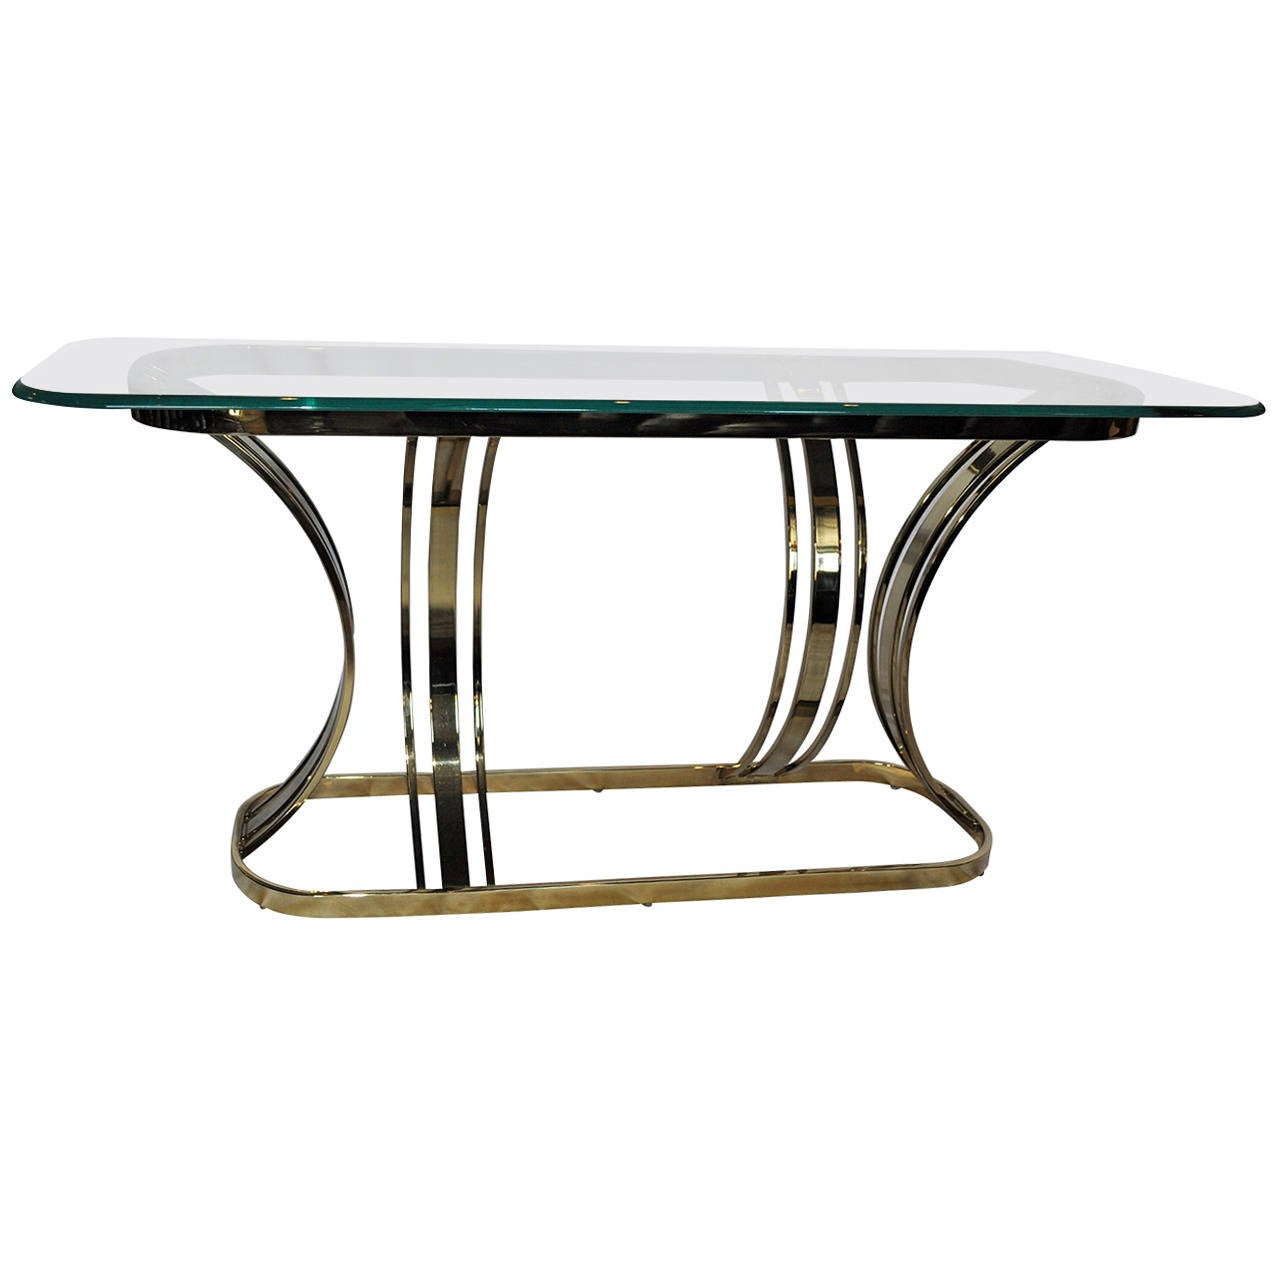 Sculptural Brass and Glass Console Table in Style of Milo Baughman